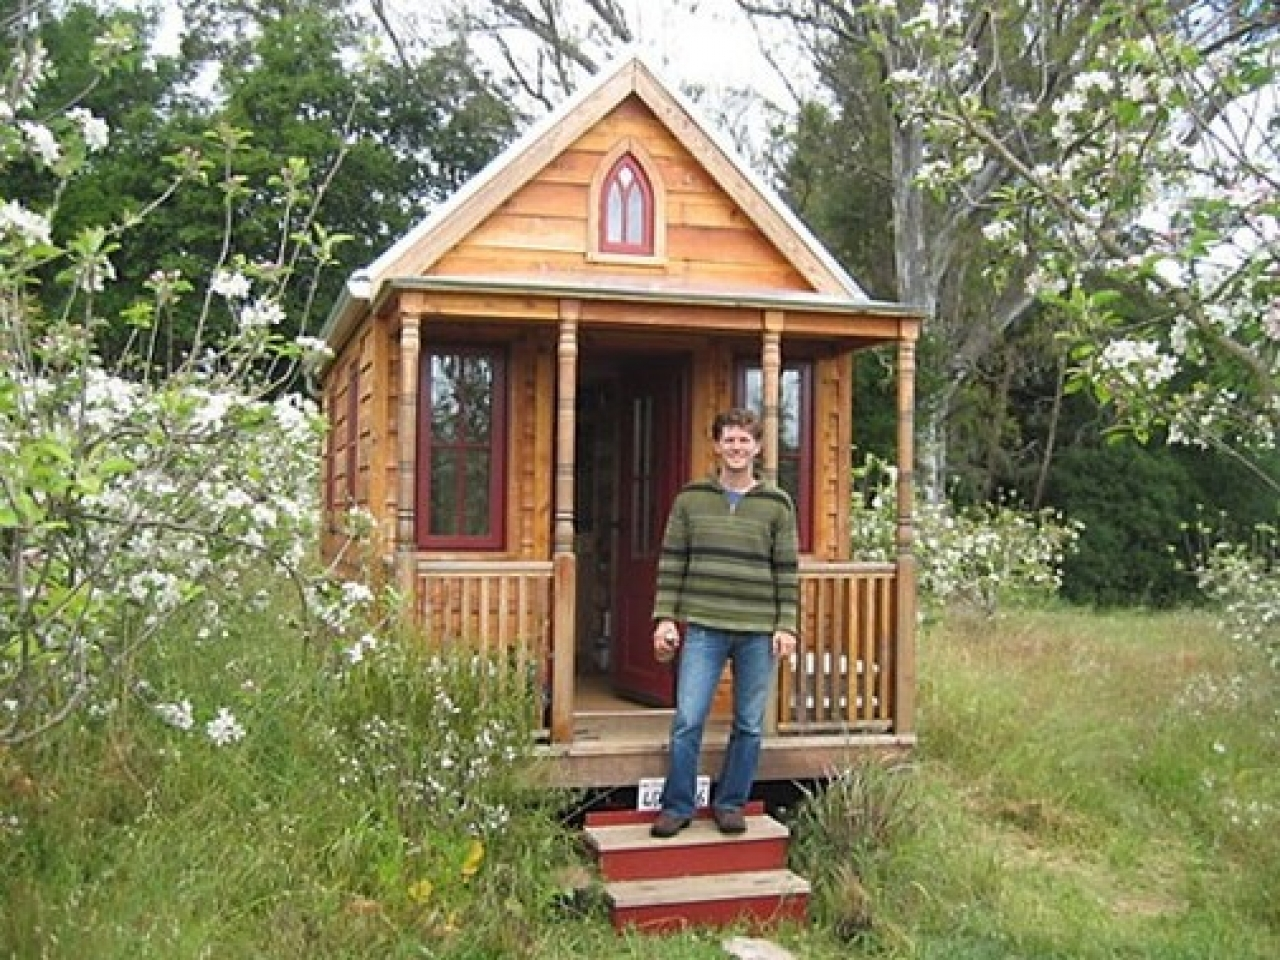 Tiny Home Design: Tumbleweed Tiny Houses Tiny Victorian House Plans, Small